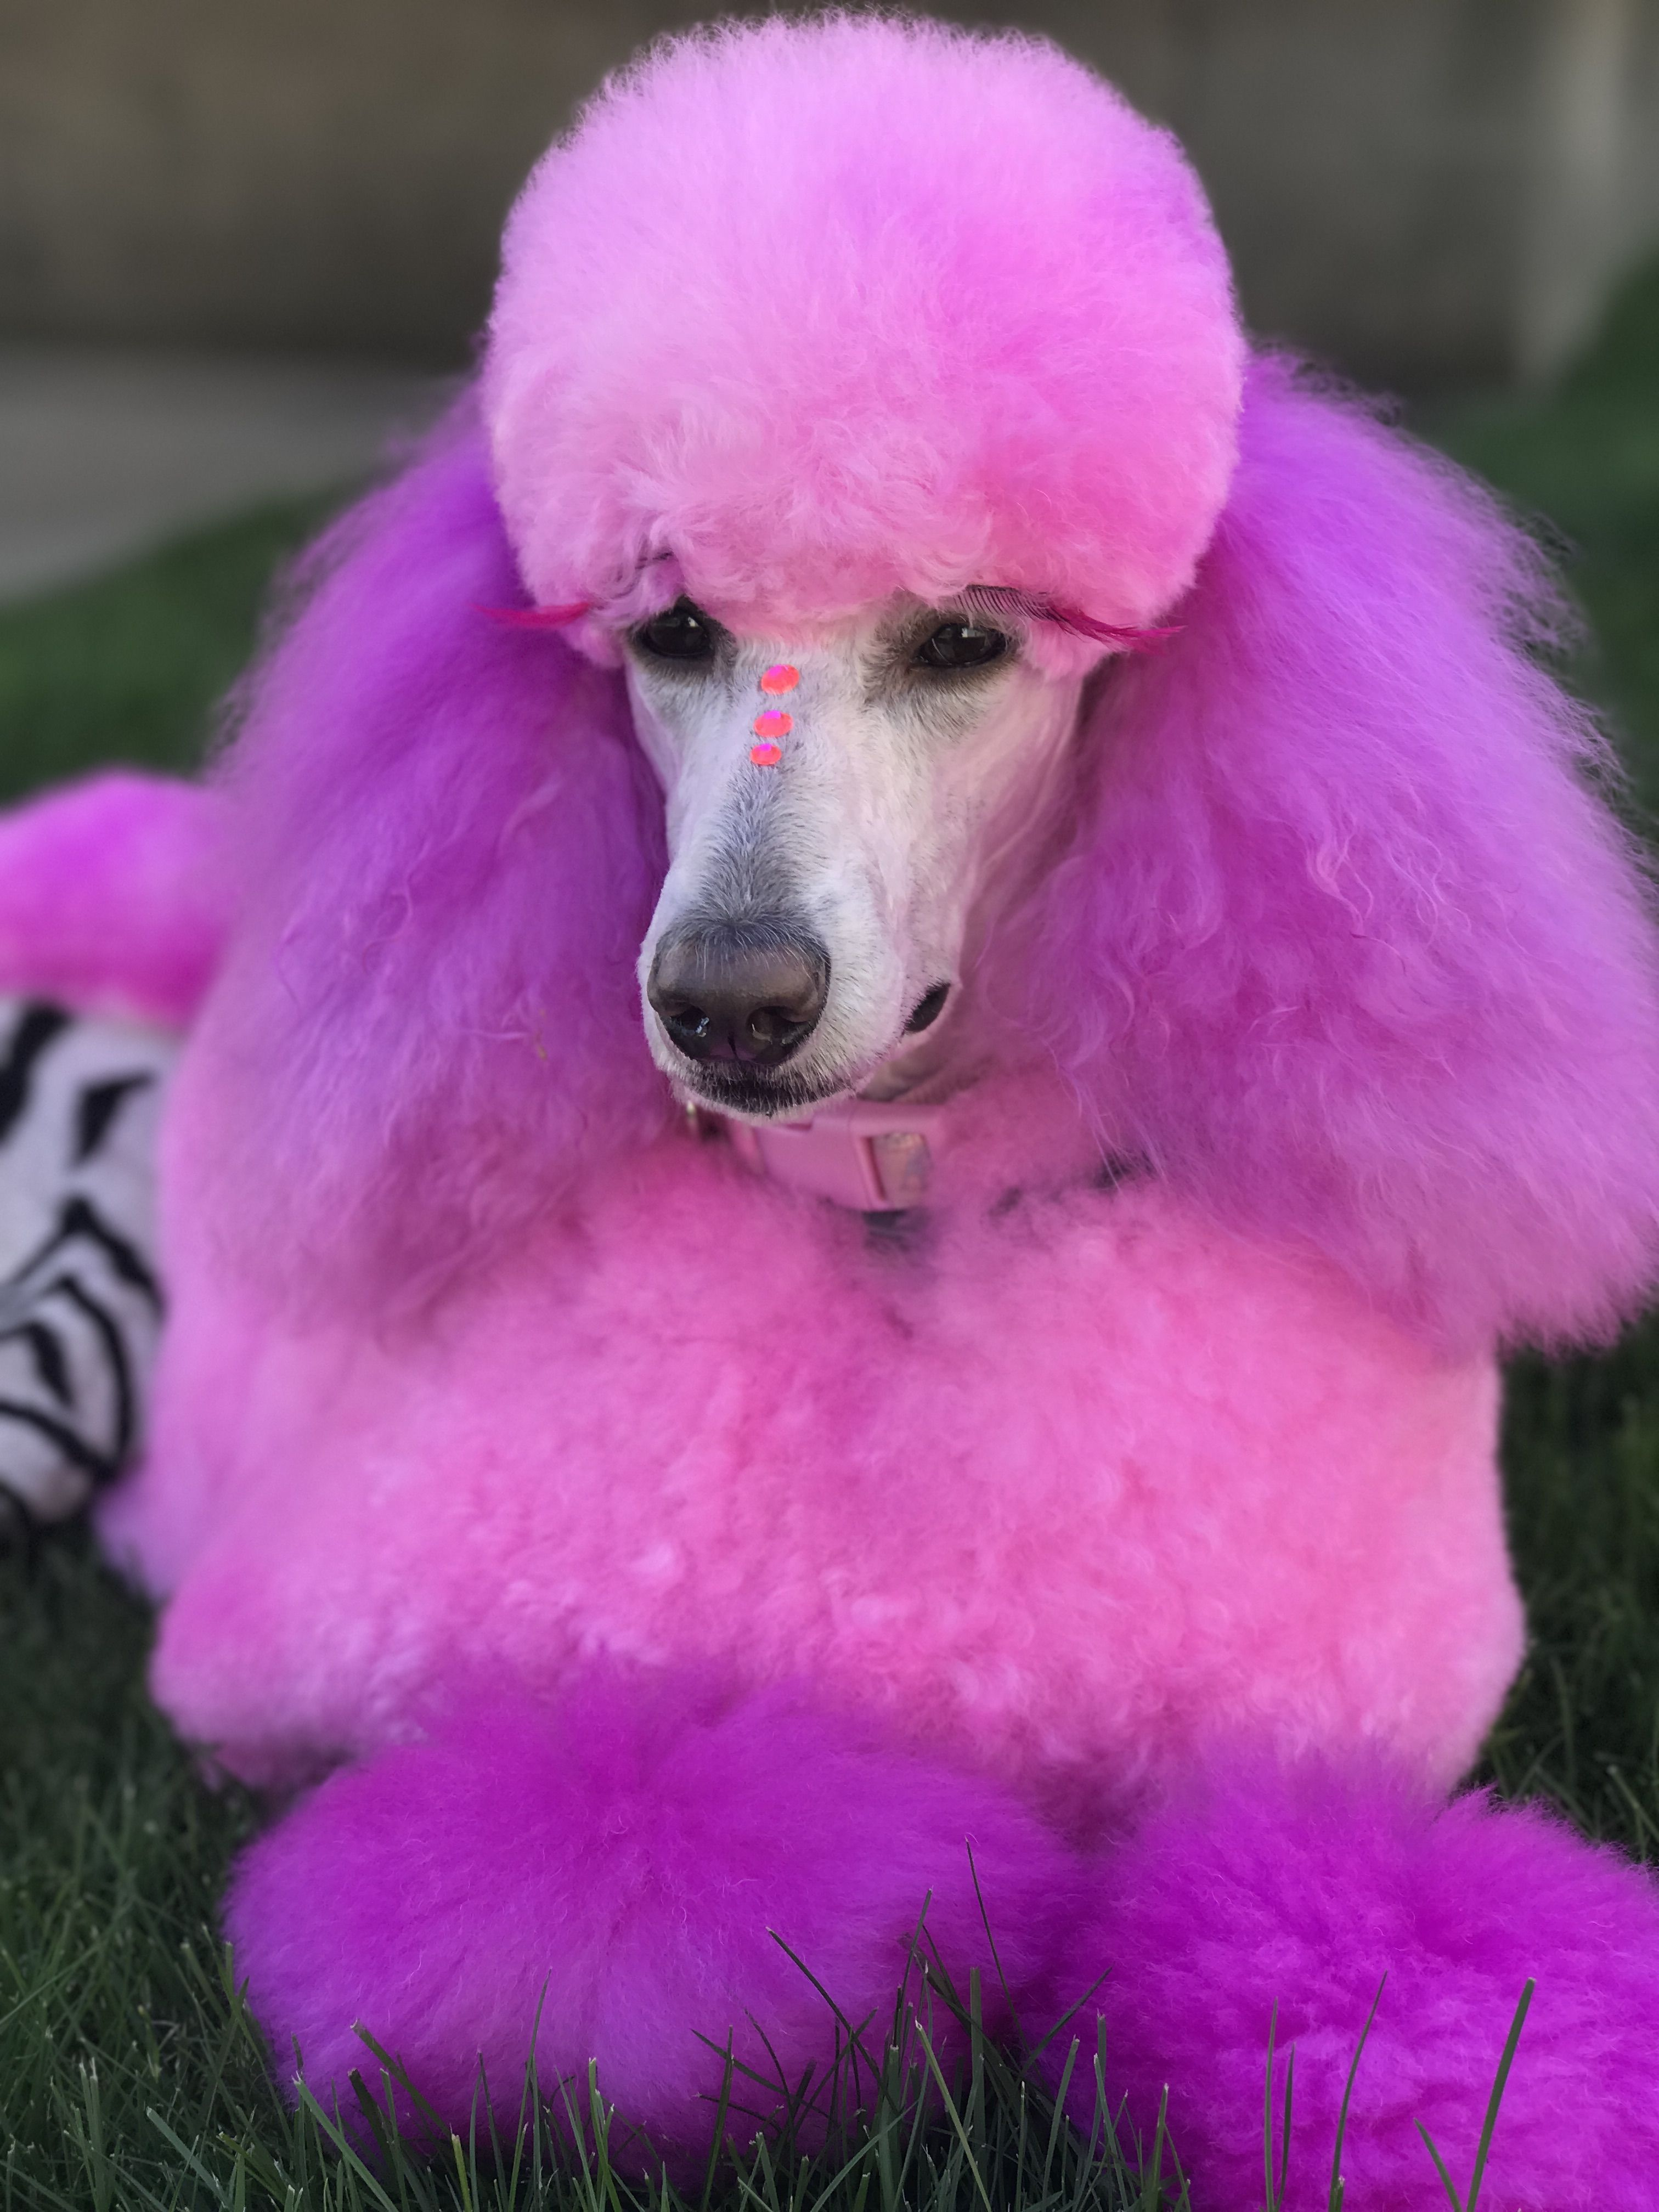 Pin by Stephanie Denapoli on Grooming   Pinterest   Poodle, Pink ...